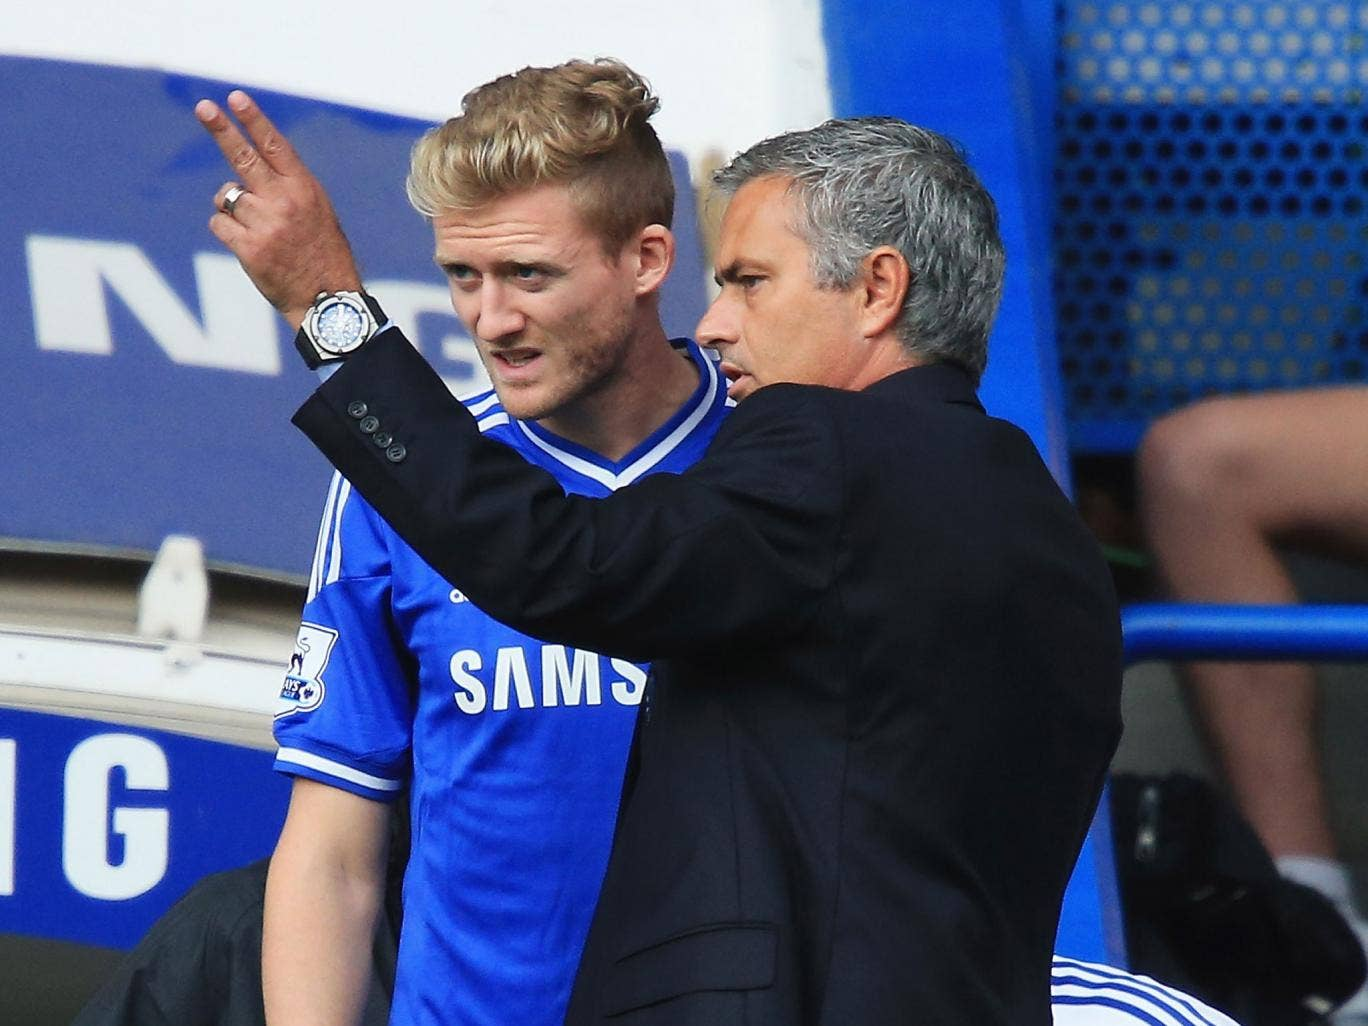 Andre Schurrle is brought on from the bench by Jose Mourinho in Chelsea's 2-0 win over Hull